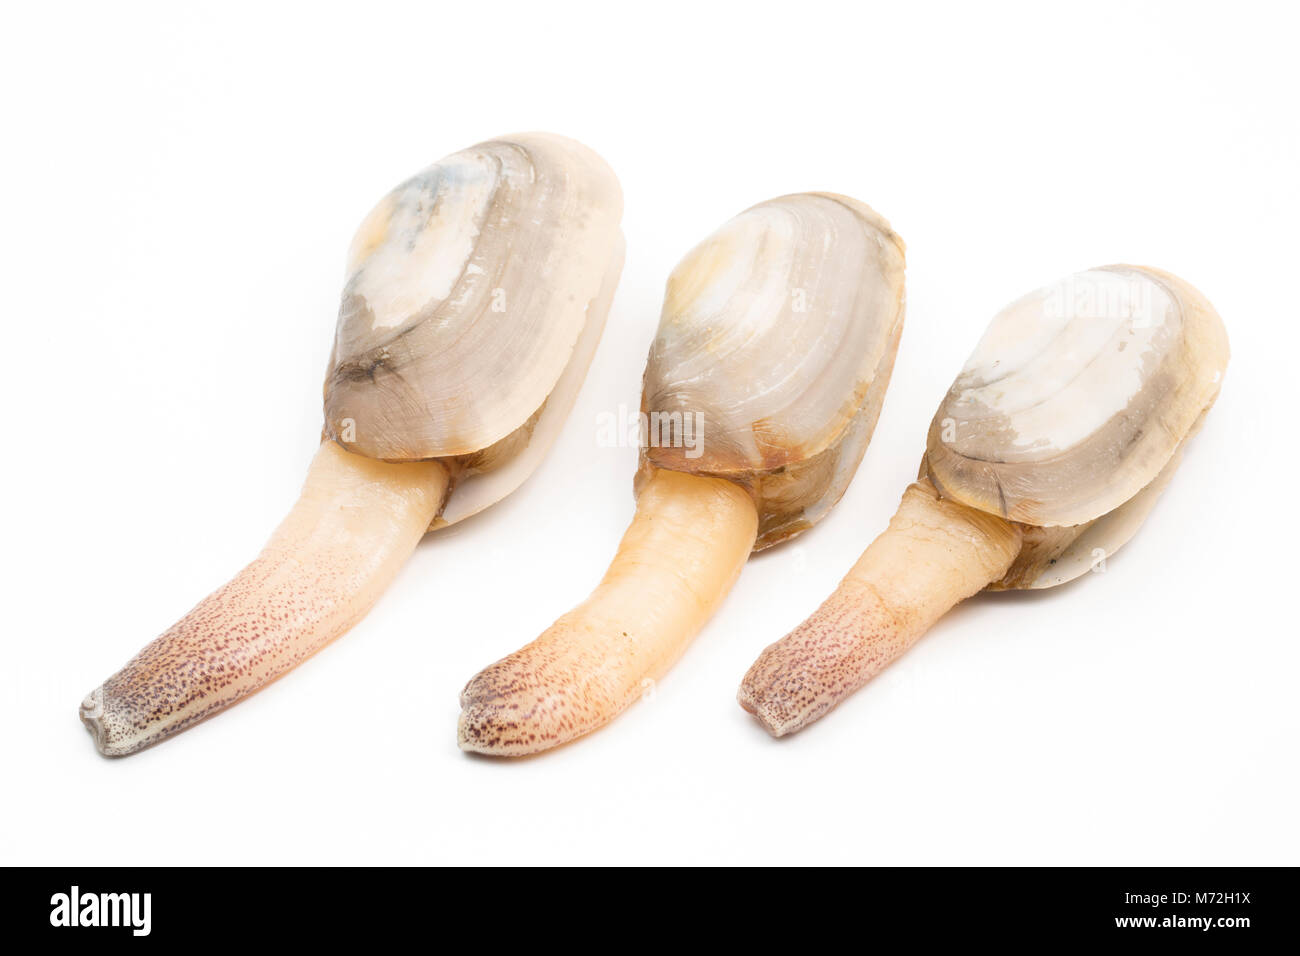 Common otter clams-Lutraria lutraria- washed up at Studland ,Dorset following Storm Emma and freezing conditions, - Stock Image